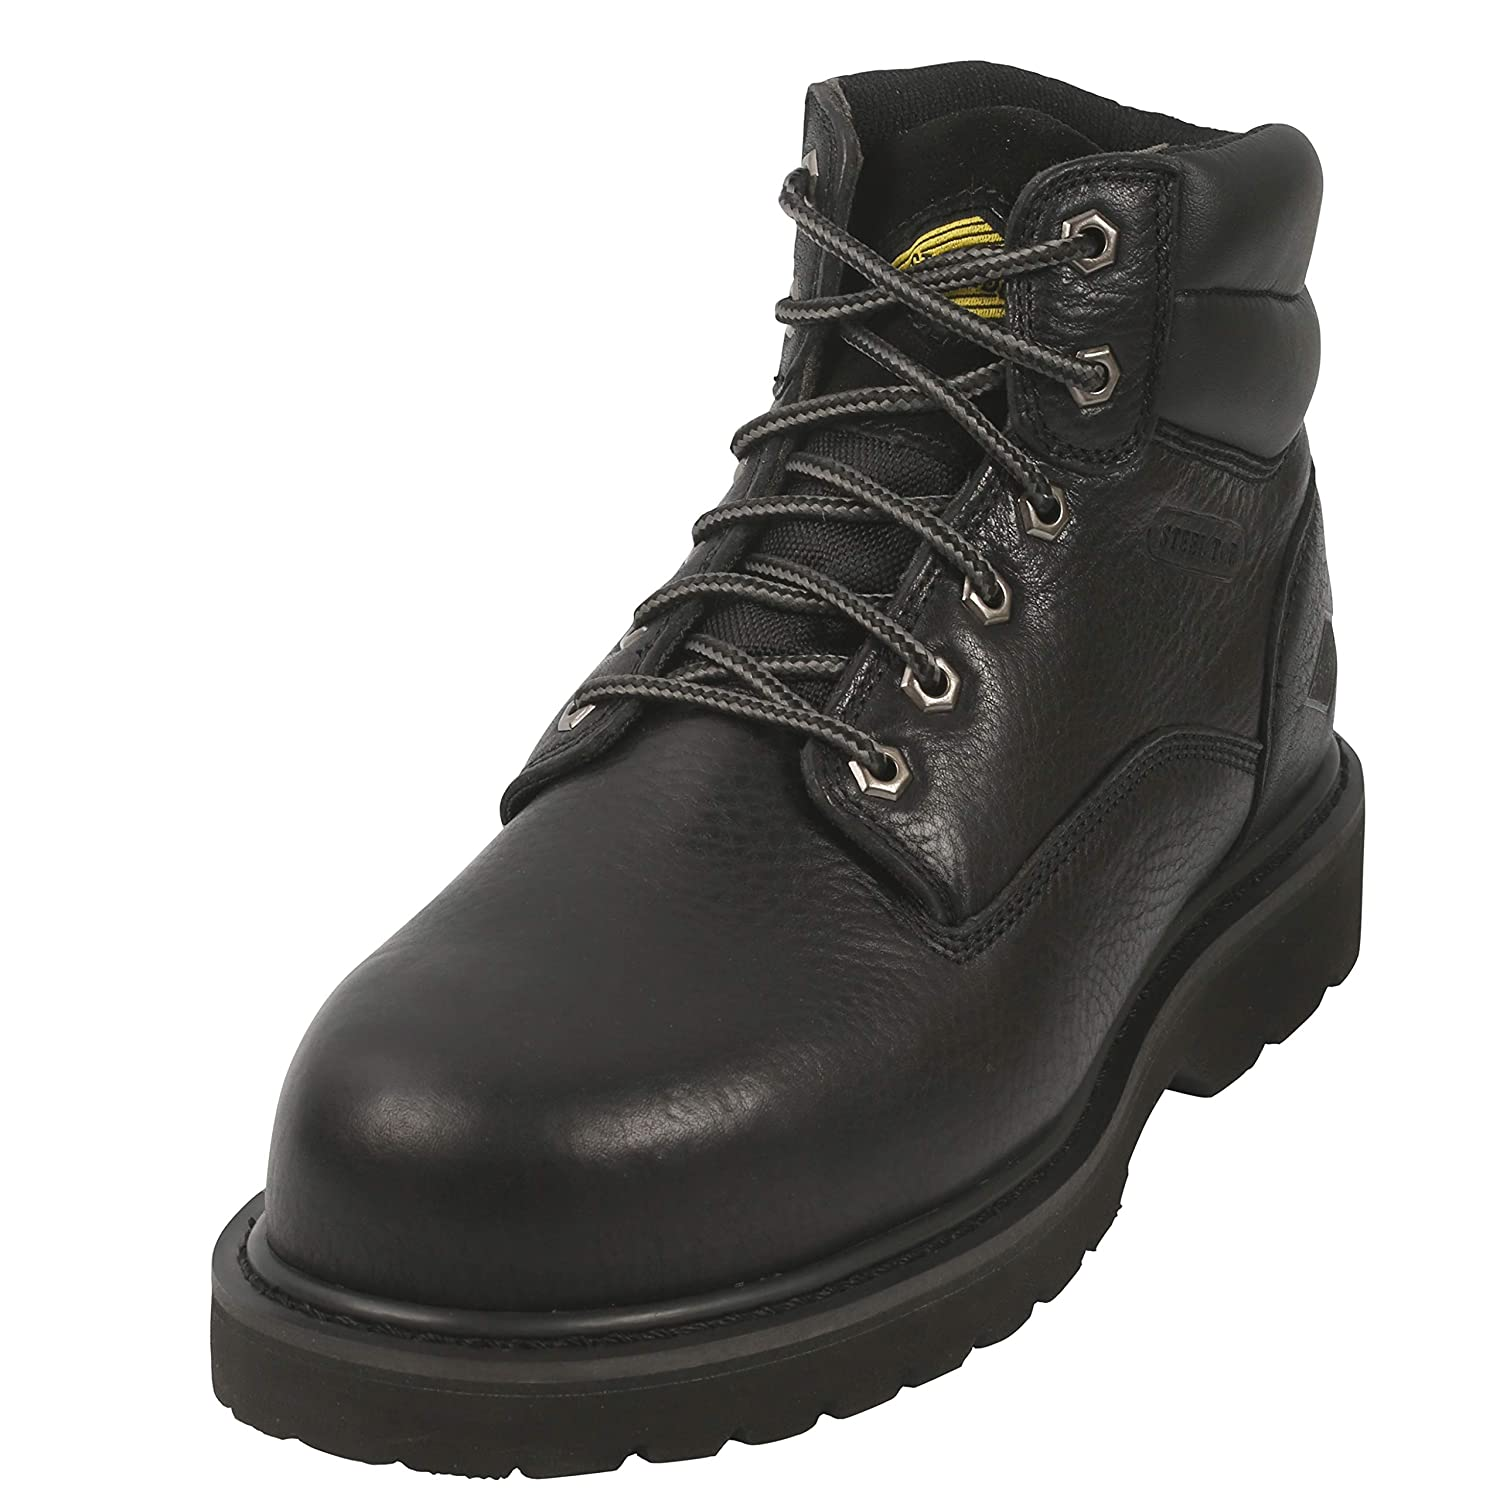 35b638877b4 Amazon.com | Steel Toe Work Boots for Men 6